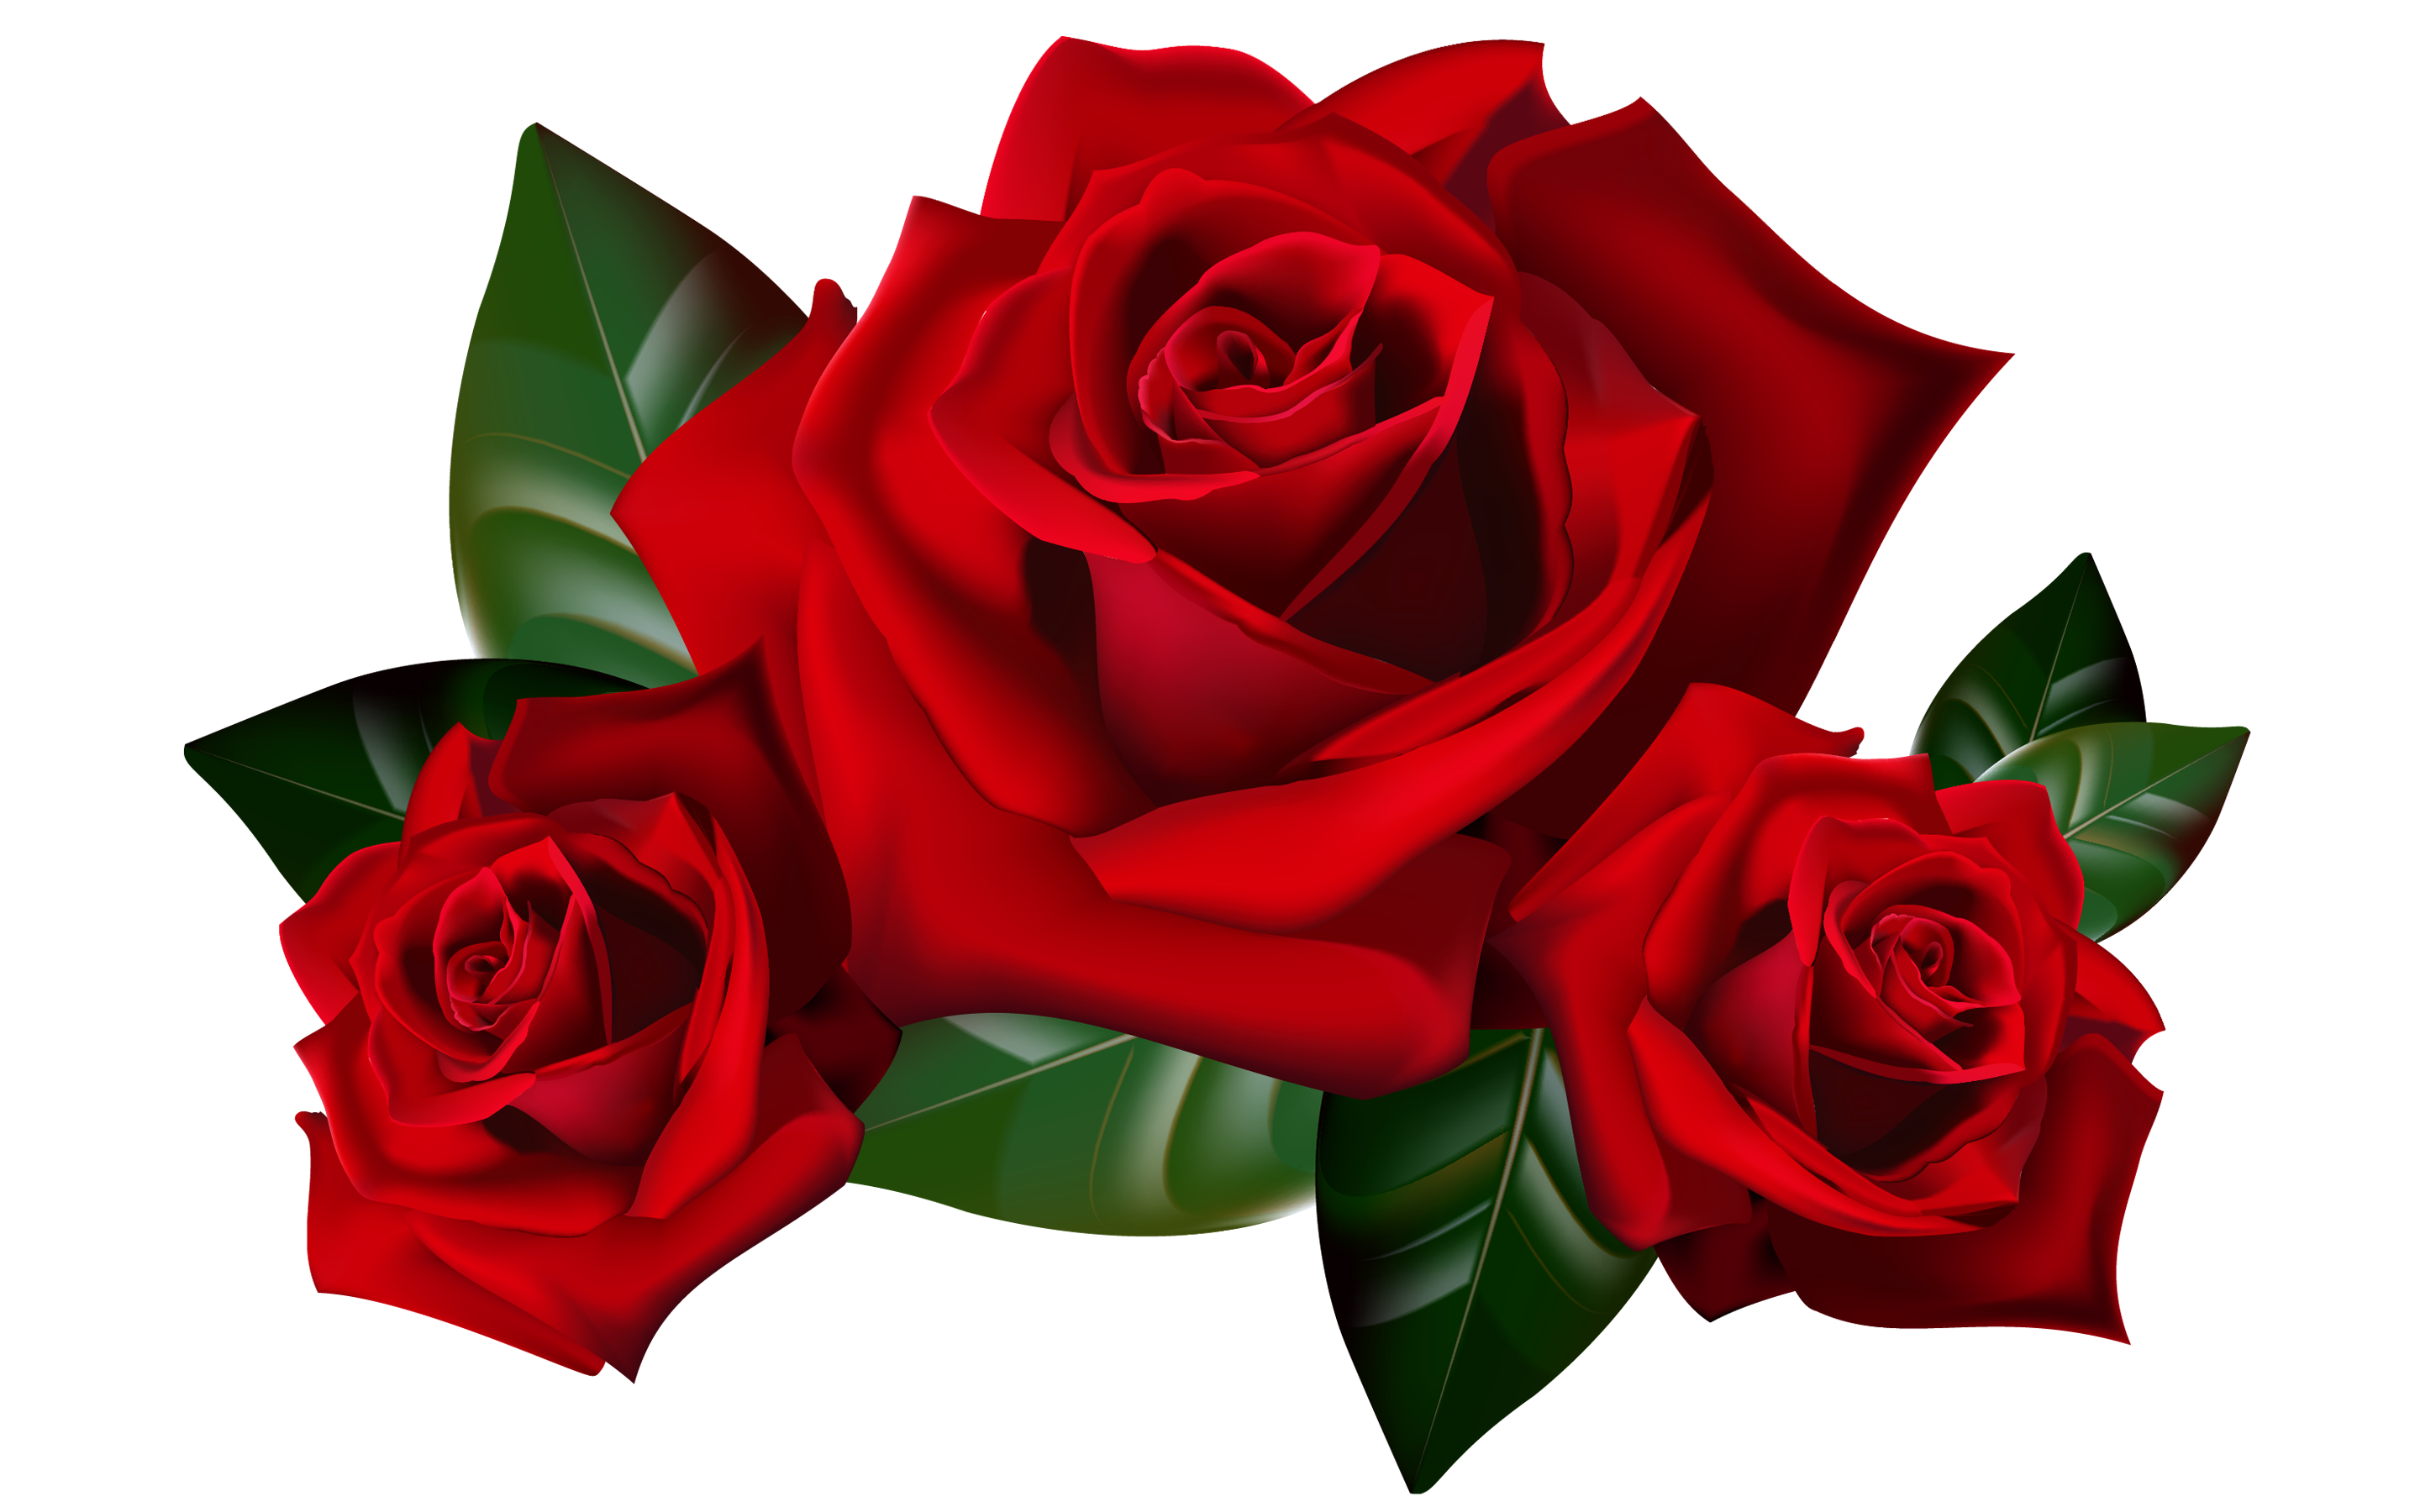 Rose clipart high resolution. Red roses png picture